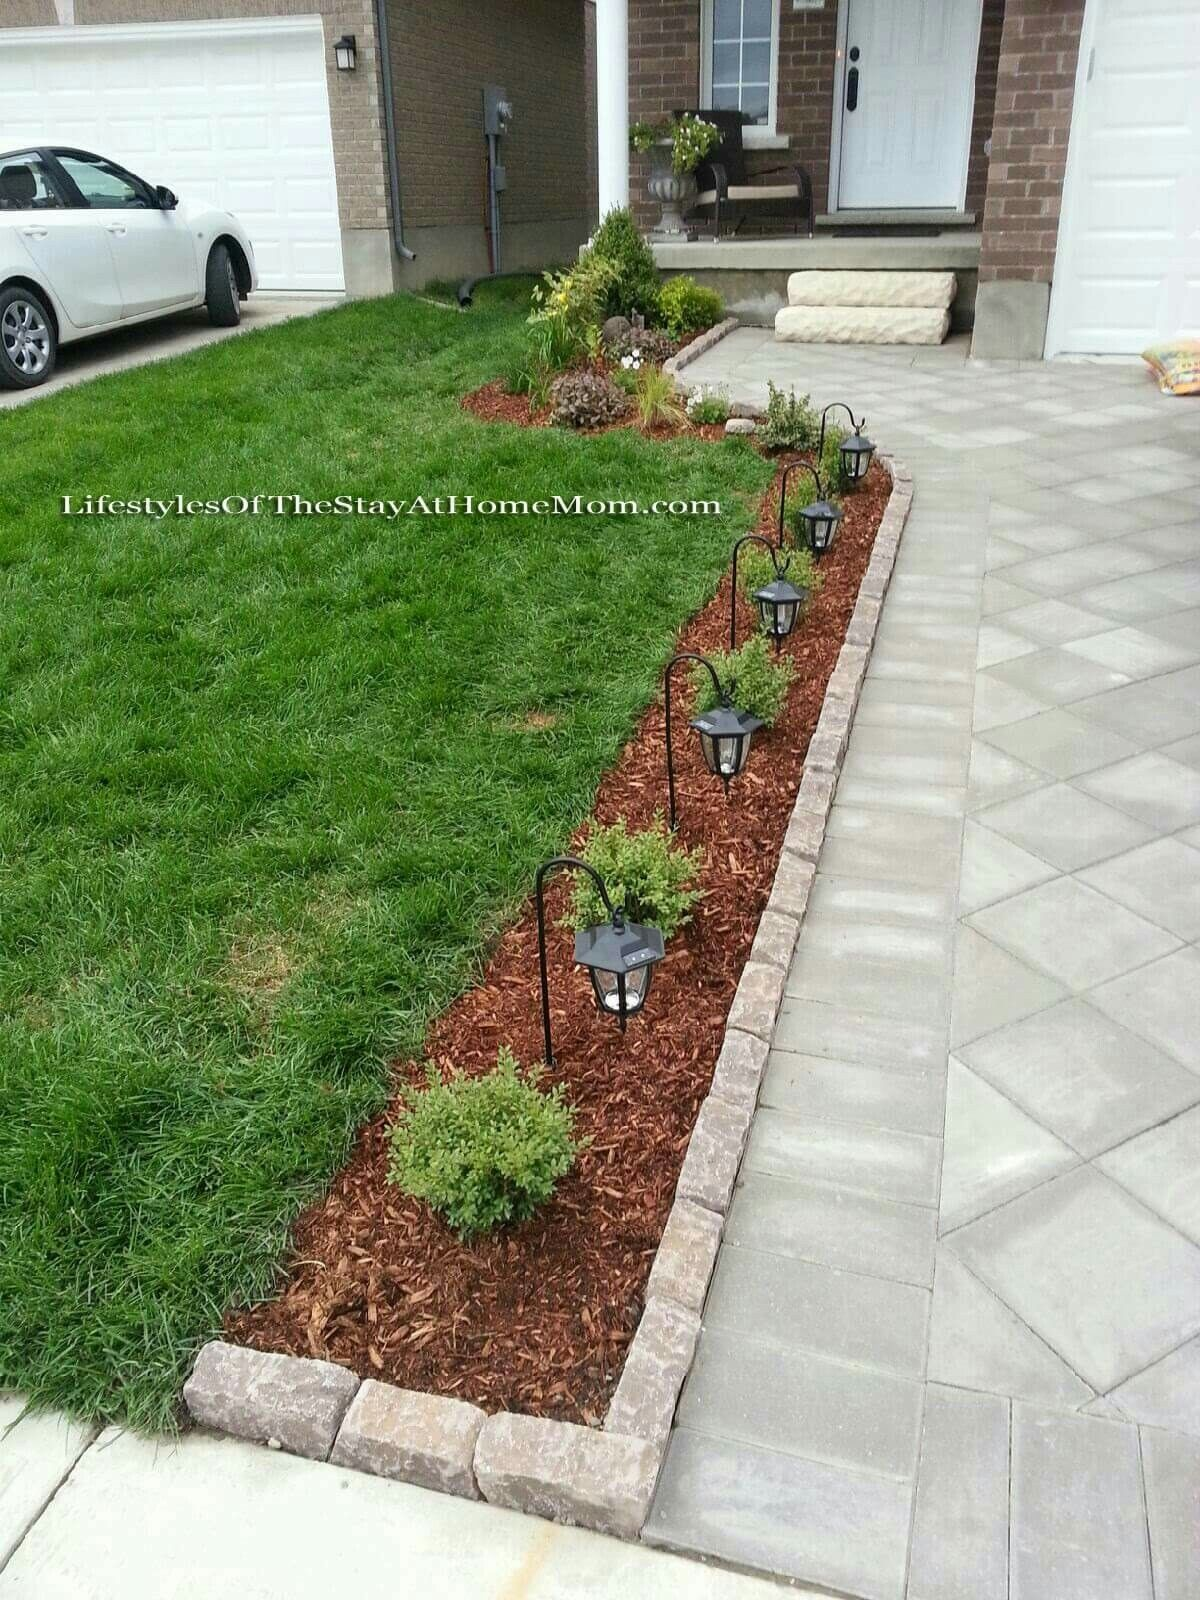 Driveway edged with lanterns and small shrubs - perfect ...